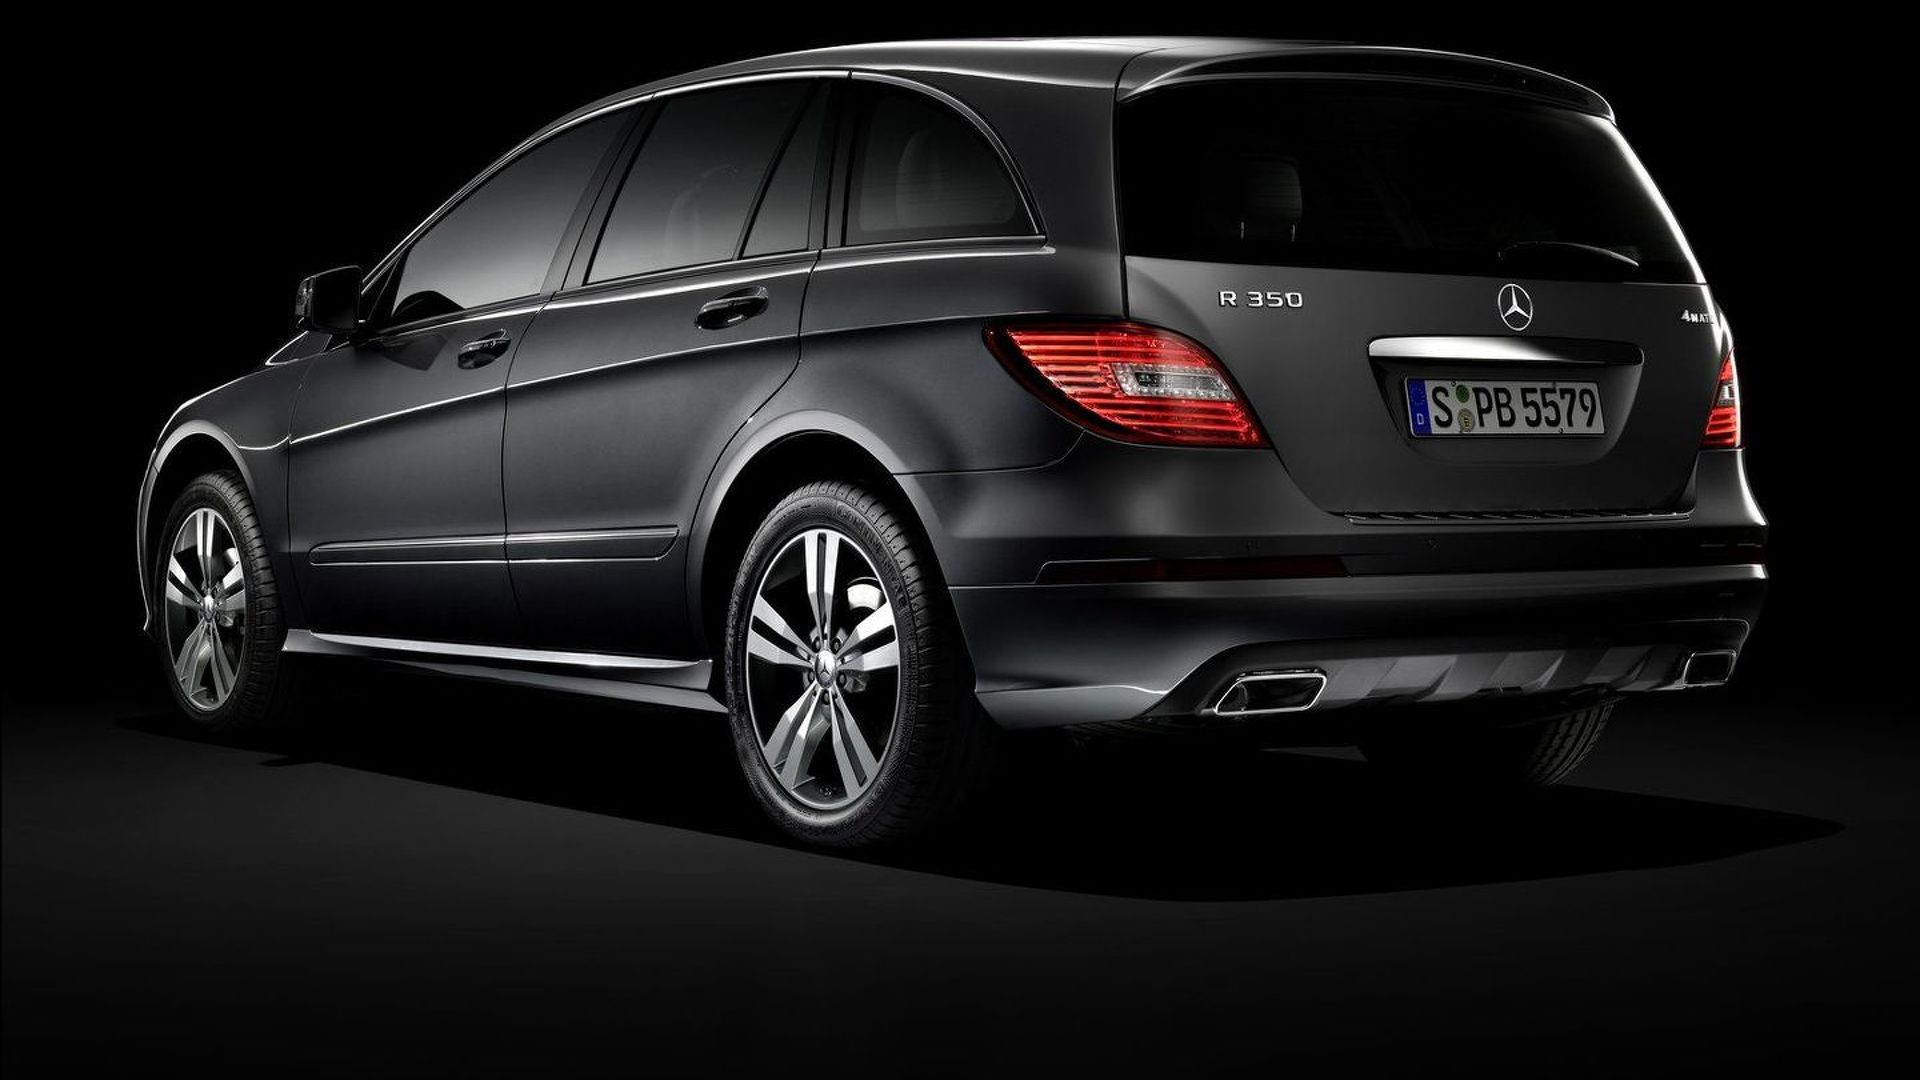 Second generation Mercedes-Benz R-Class being considered as global model